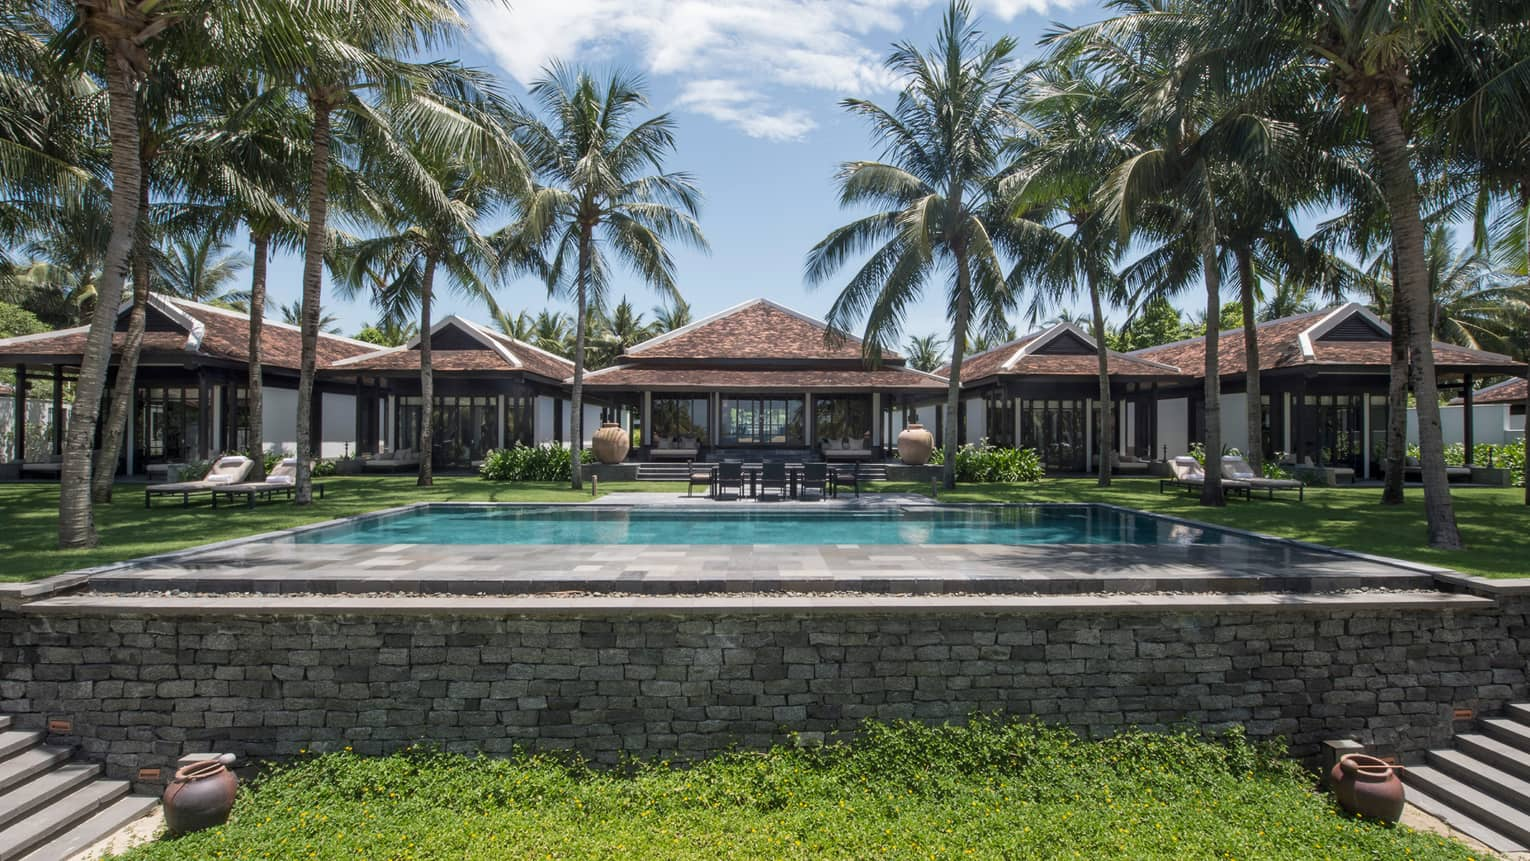 Ocean-View Villas behind large stone outdoor swimming pool, tall palm trees